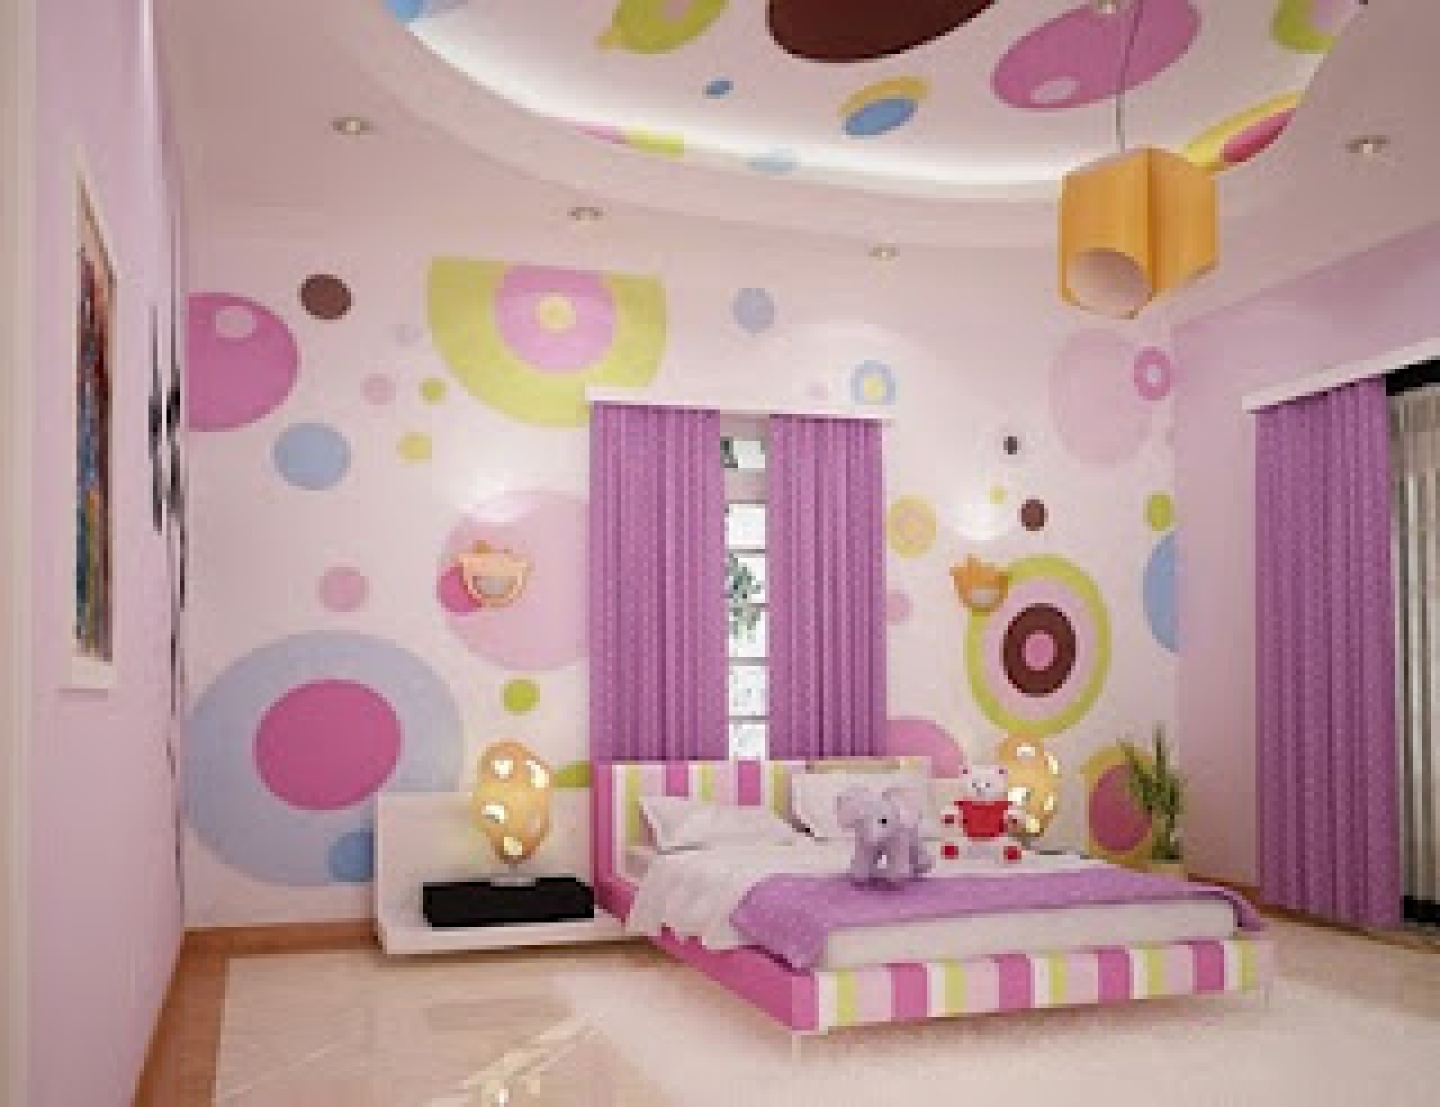 Polcadote Purple Girl Bedroom Design